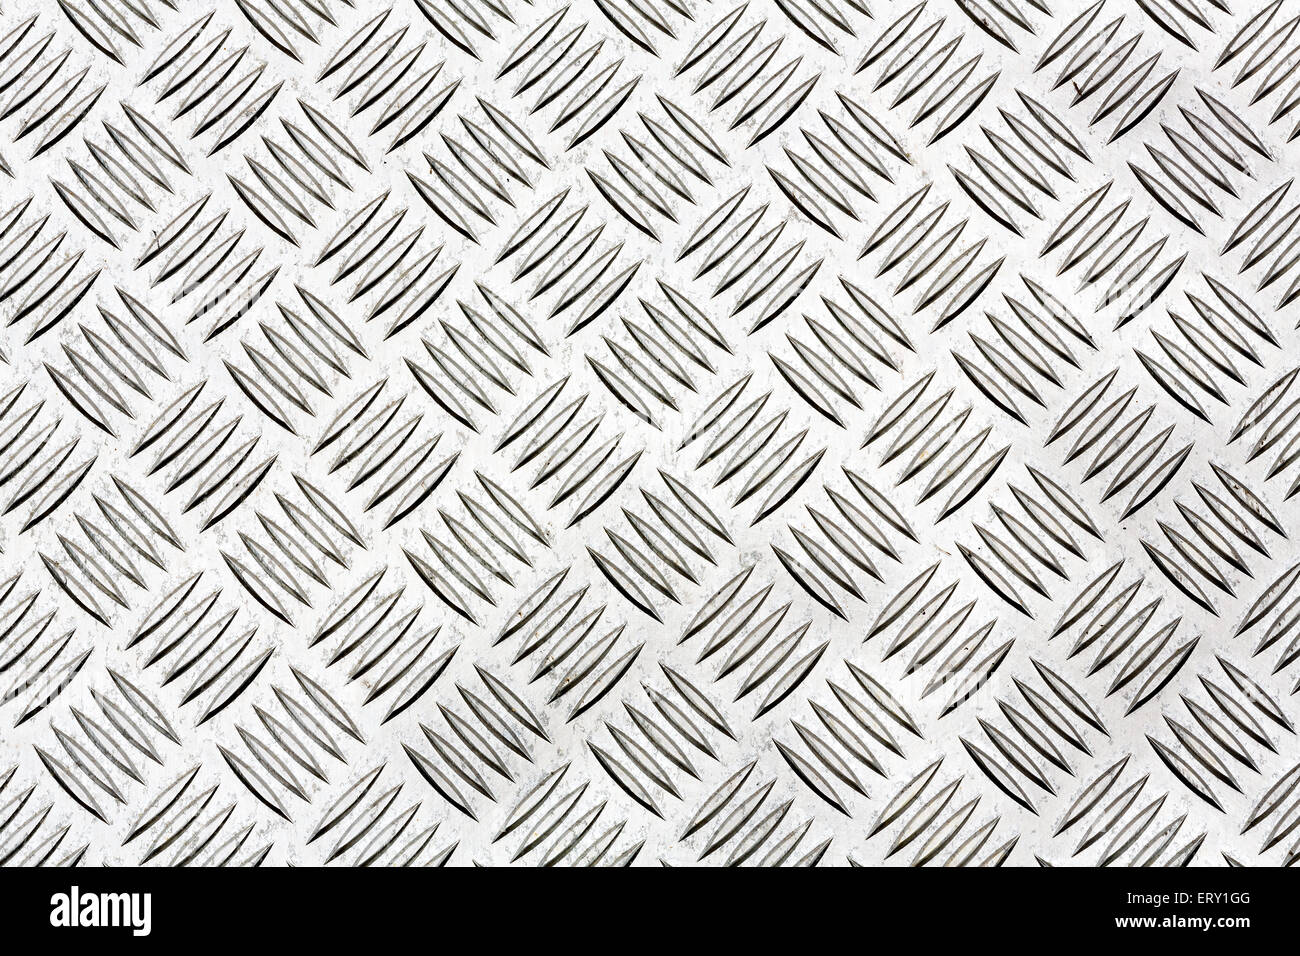 Diamond plate, also known as checker plate, tread plate, cross hatch kick plate and Durbar floor plate for texture - Stock Image